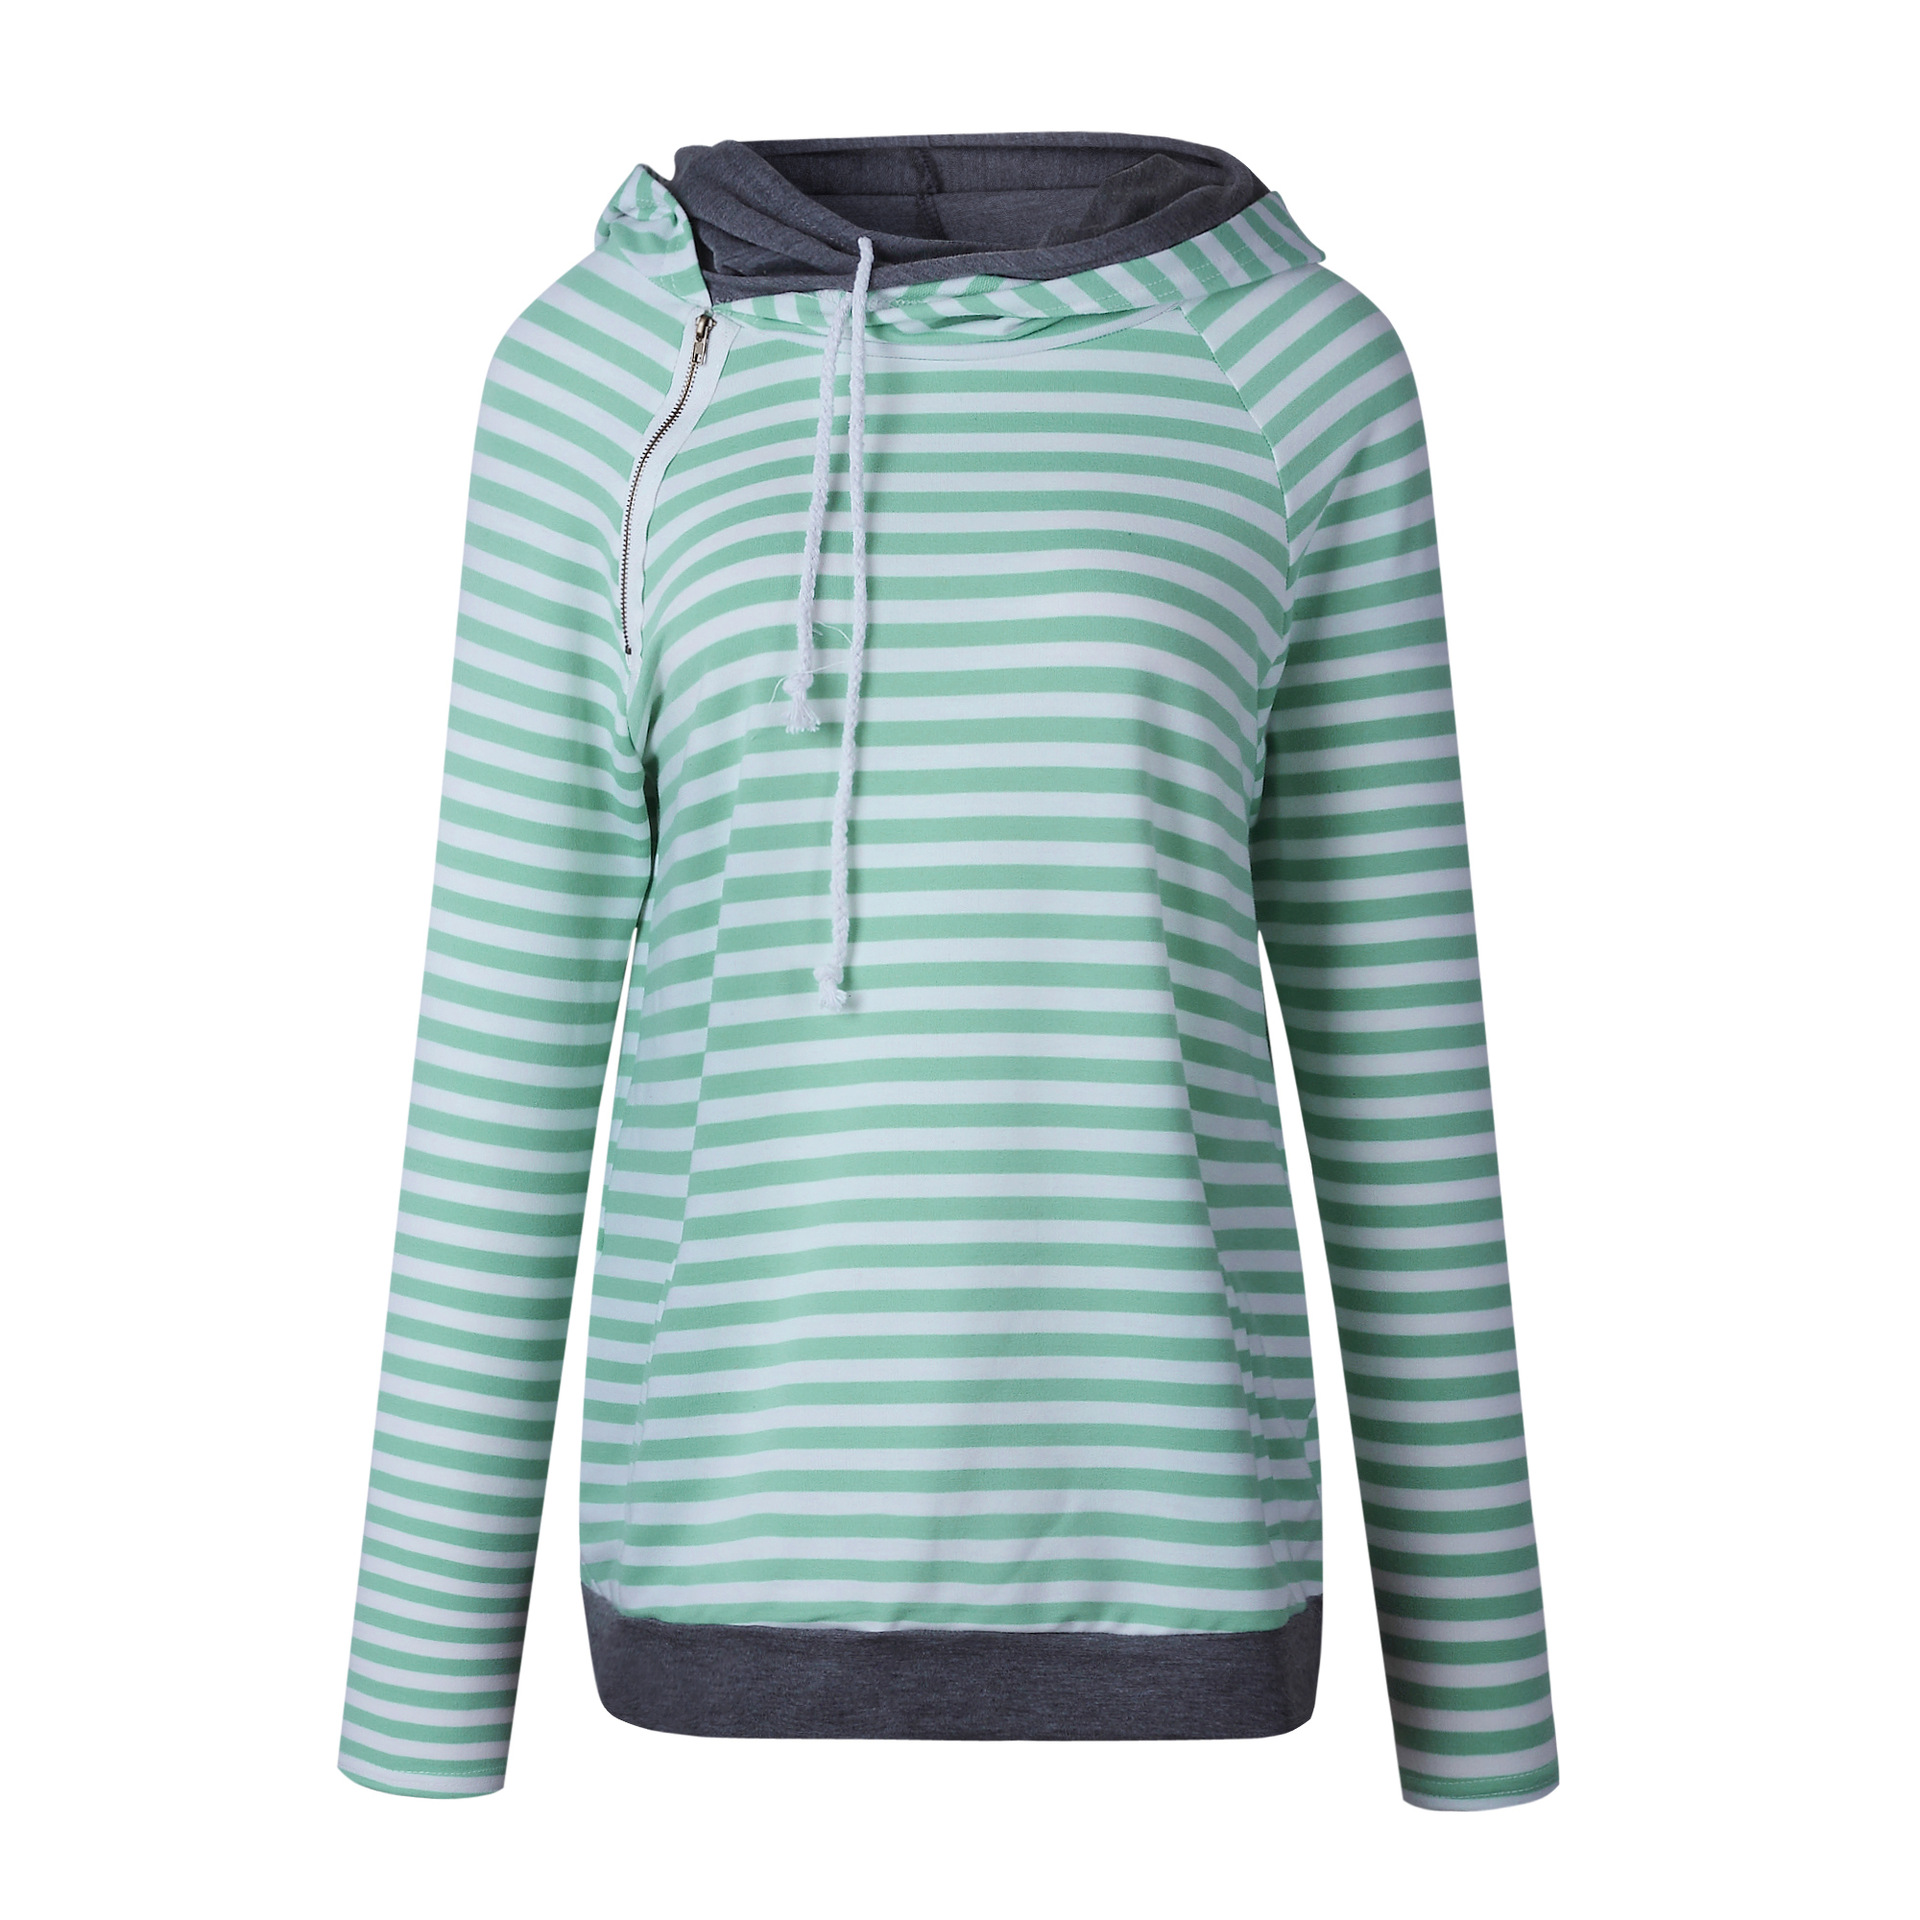 Women's Patchwork Striped Pullover Long Sleeve Hoodie, Tops With Pockets, Hooded Sweatshirt 9